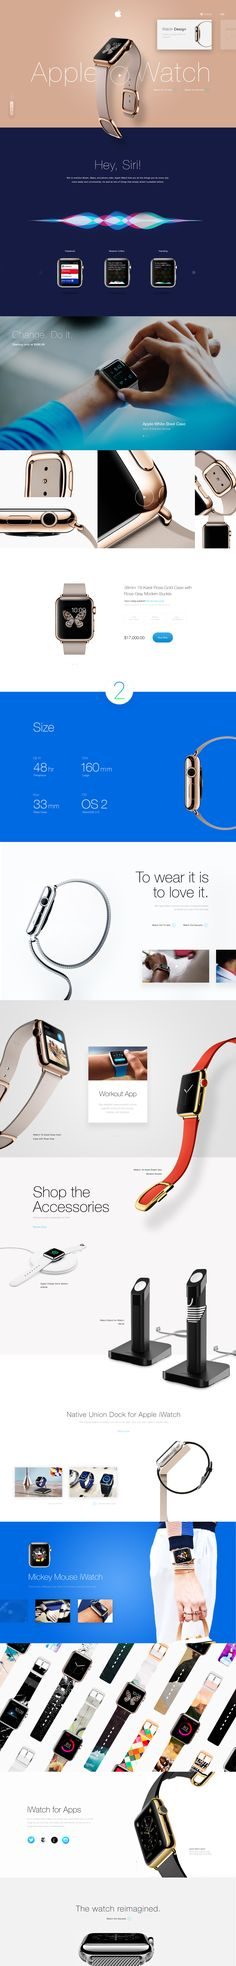 Apple iWatch #redesign #webdesign #ui #ux #apple #iwatch